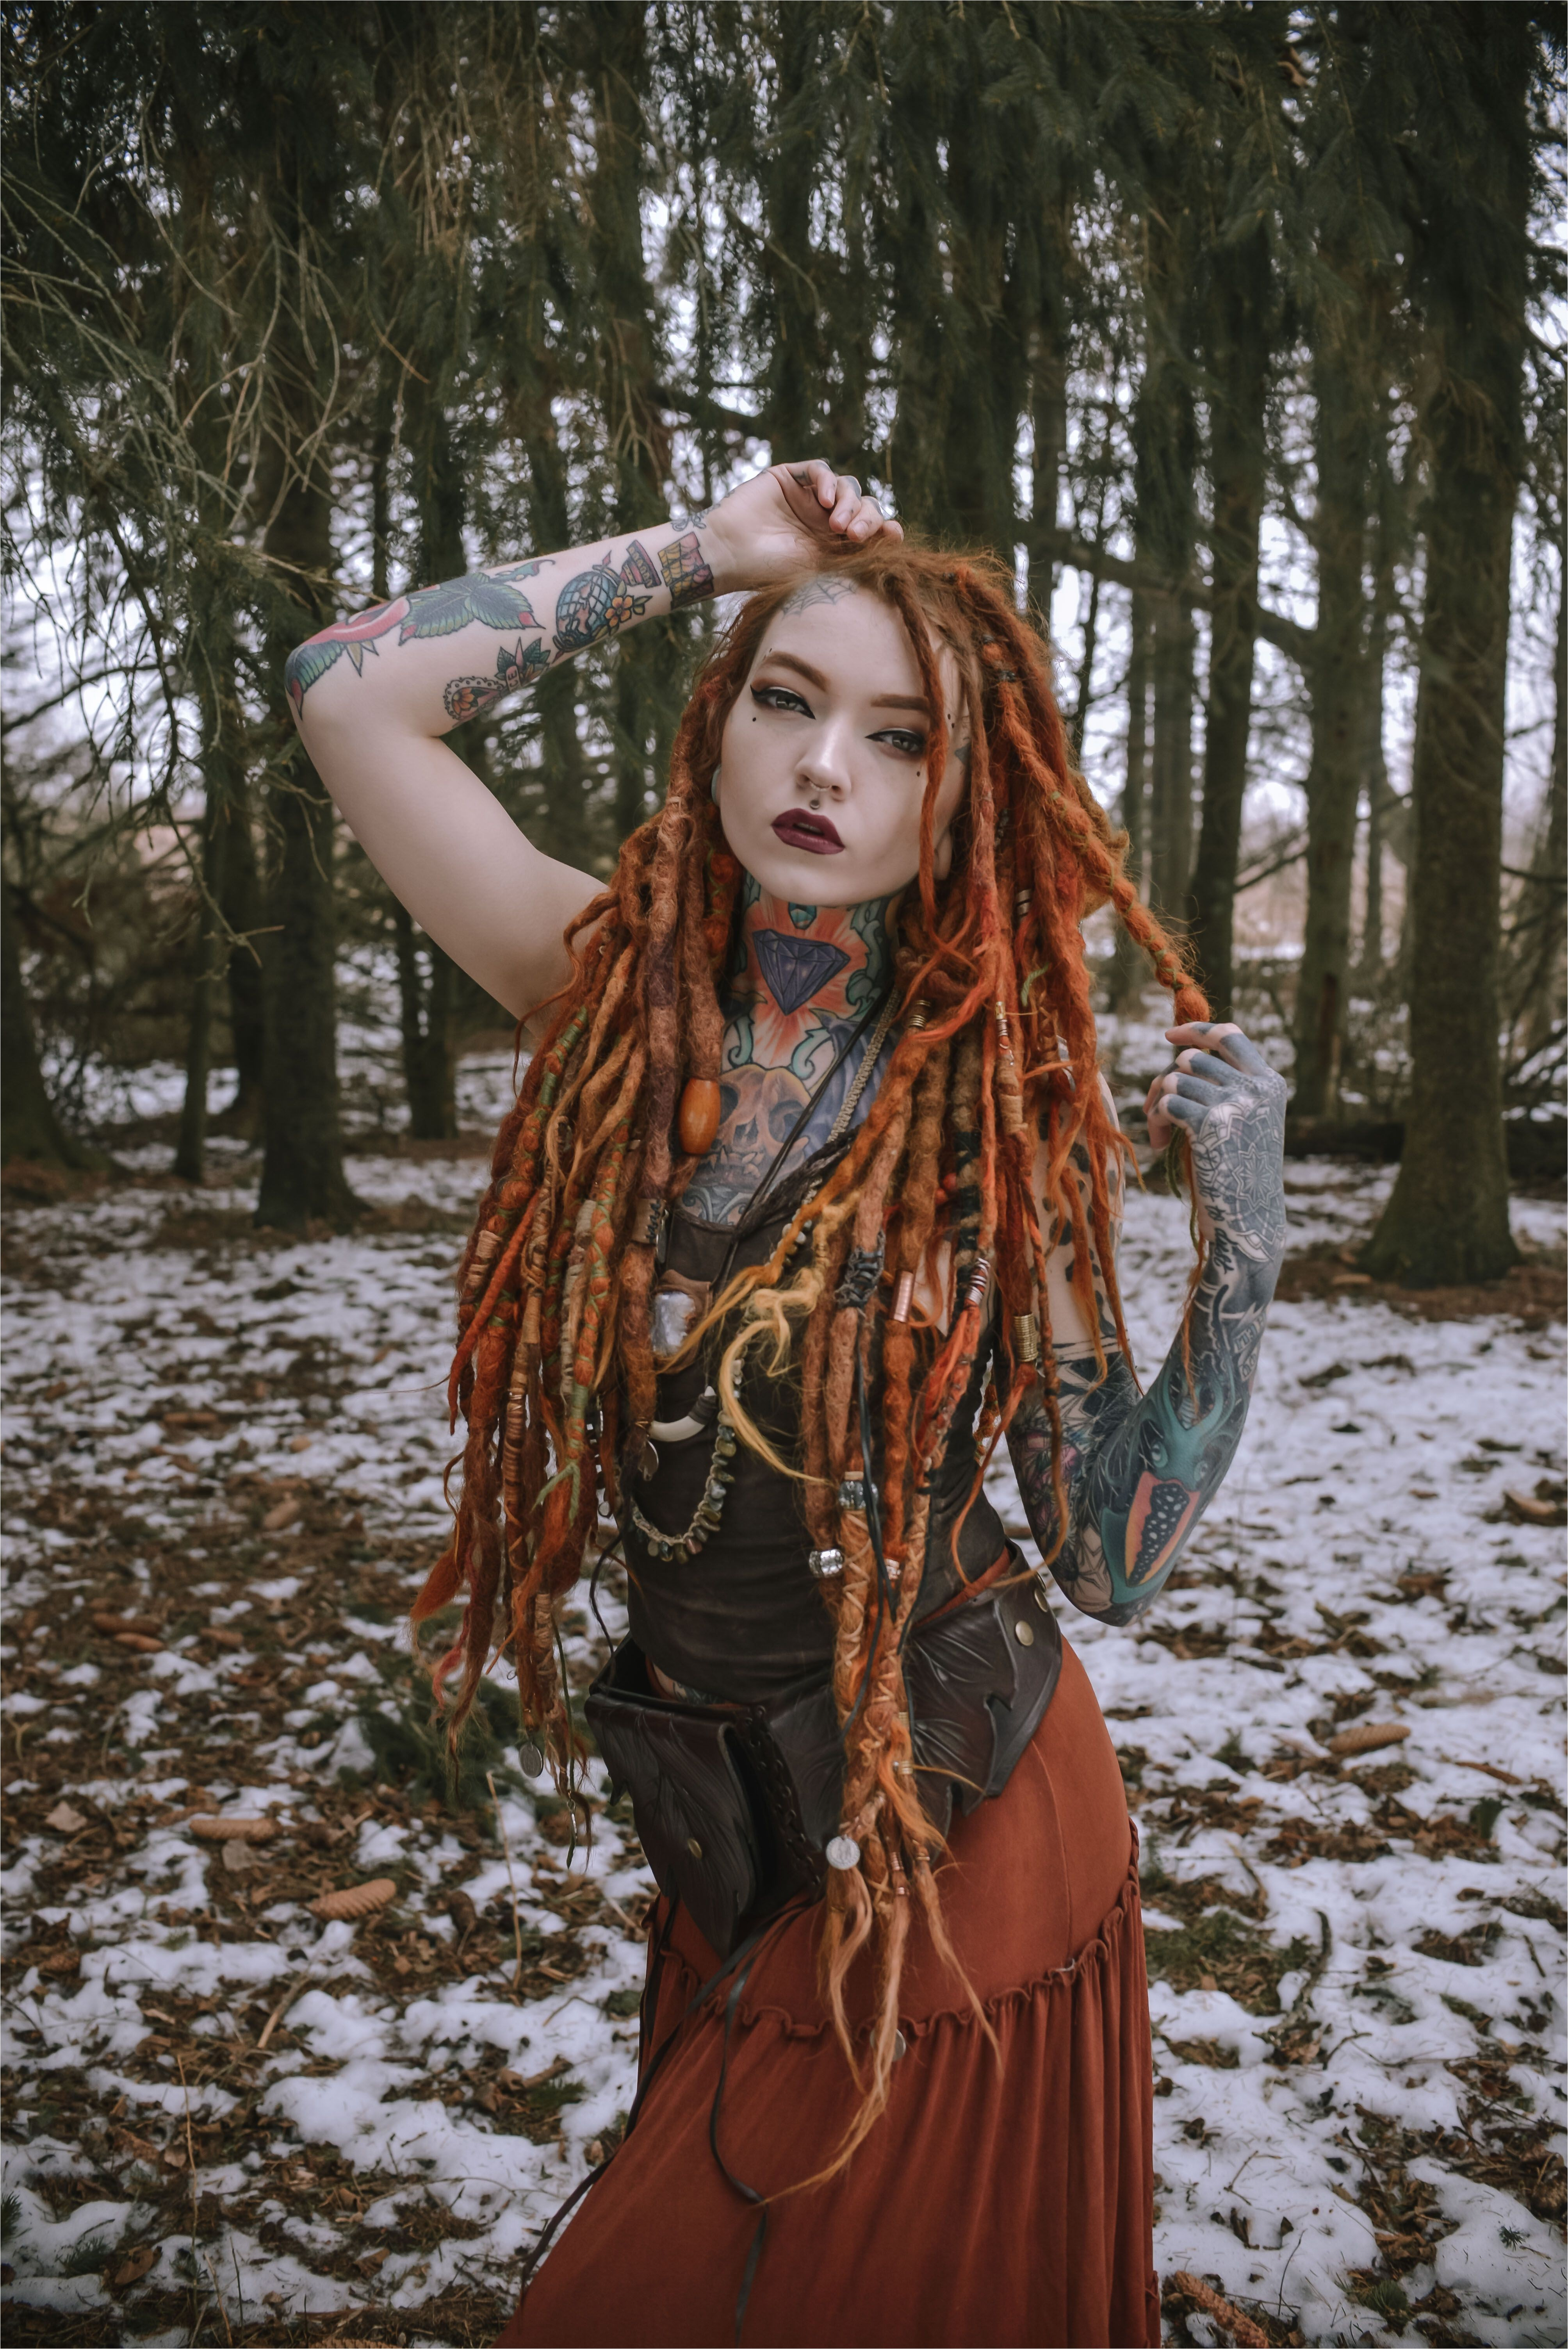 hair dreads dreadstyles dreadlocks girlswithdreads tattooed extensions viking